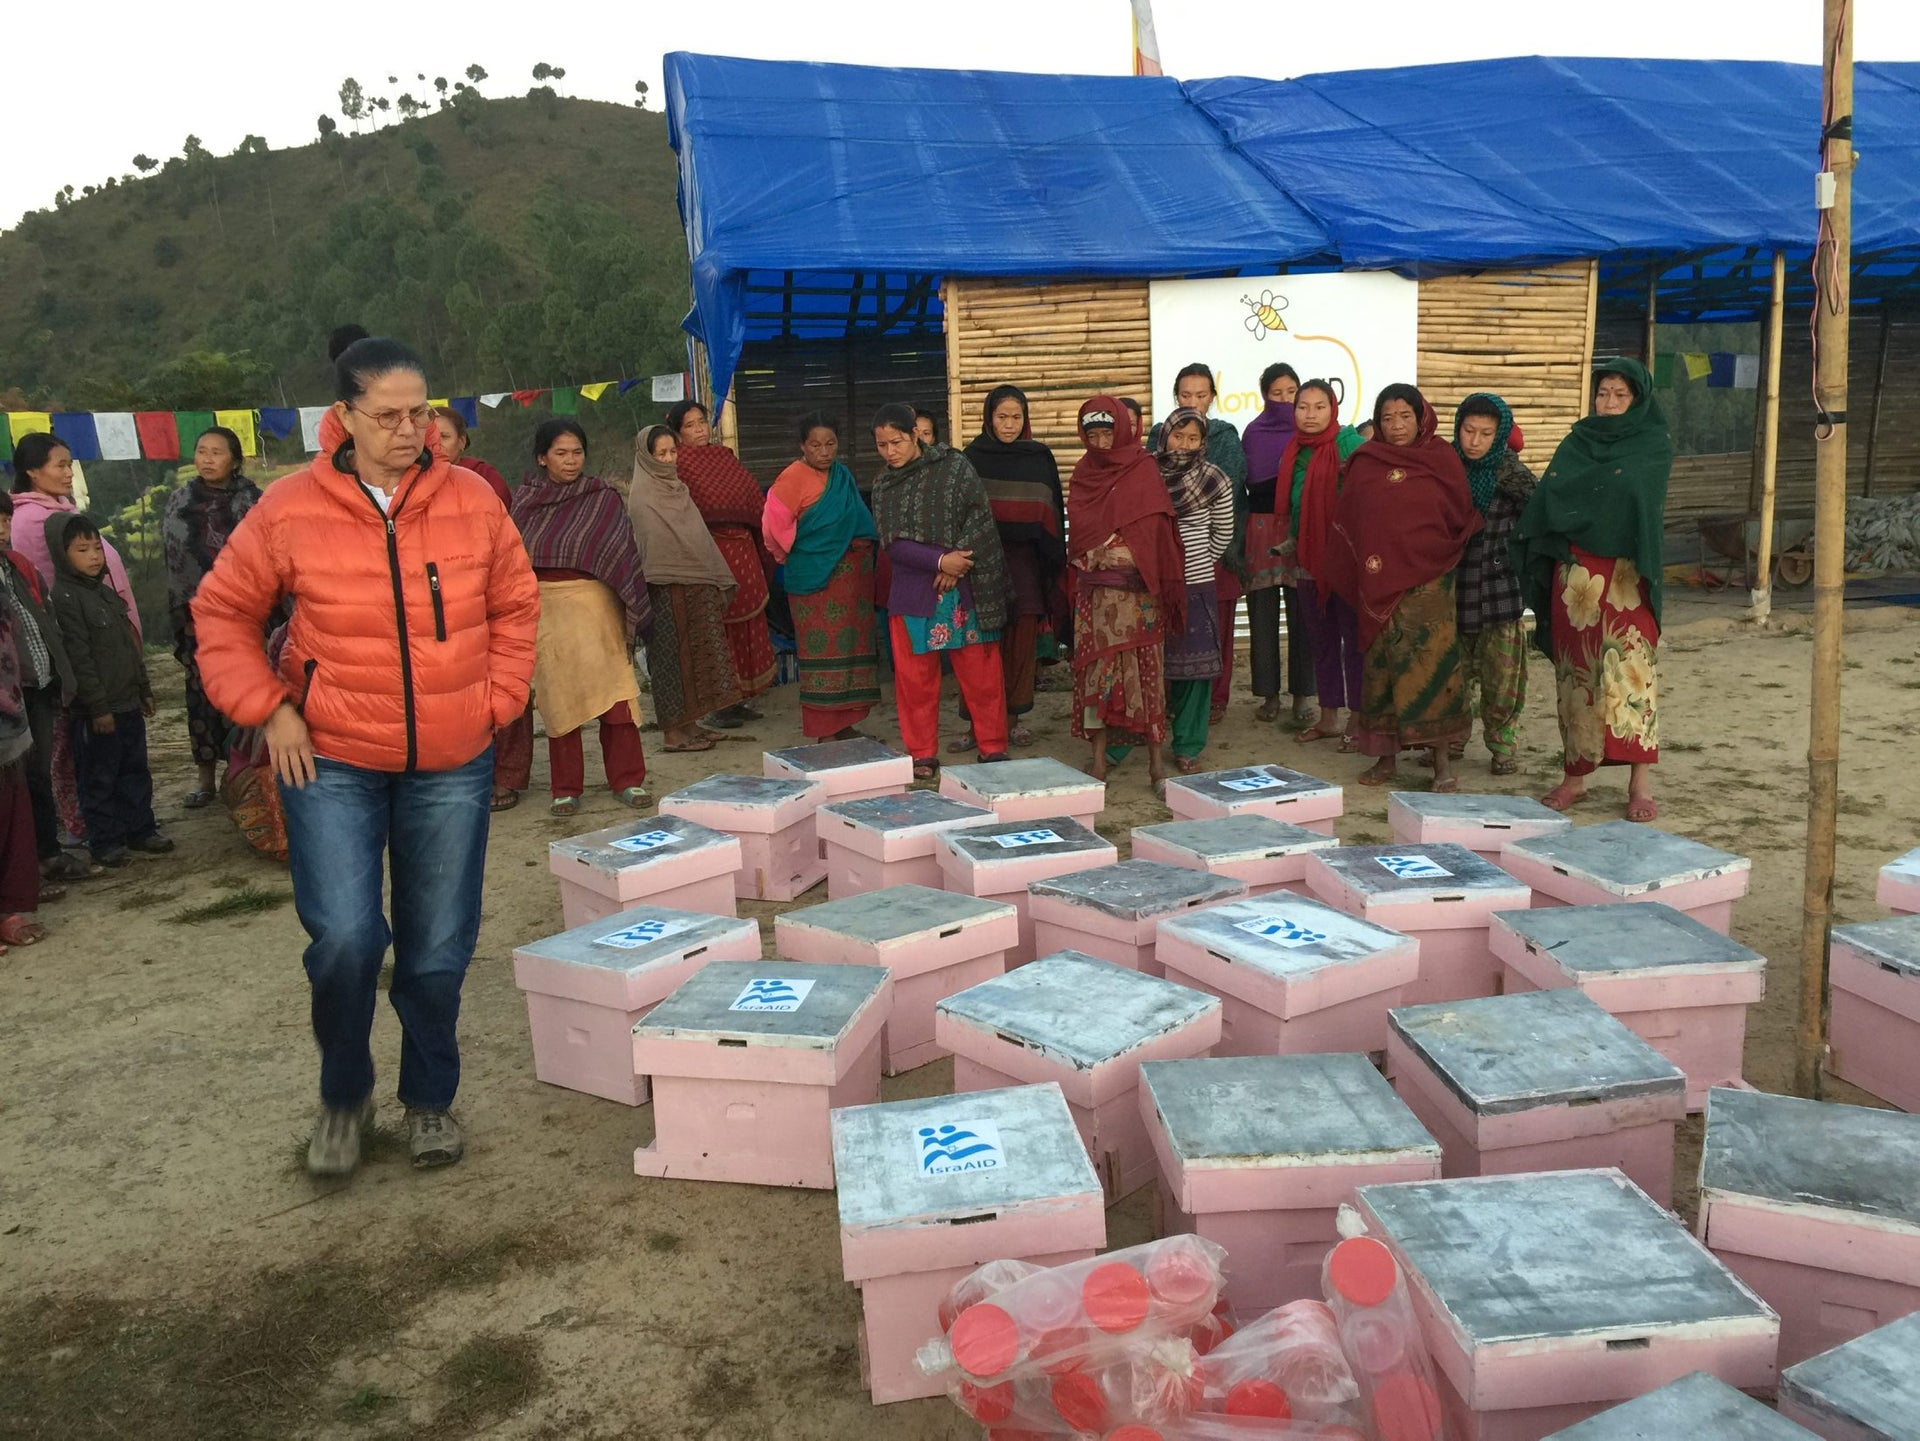 Reizy Dagani oversees distribution of the new beehives as part of the HoneyAID female empowerment project in Nepal.